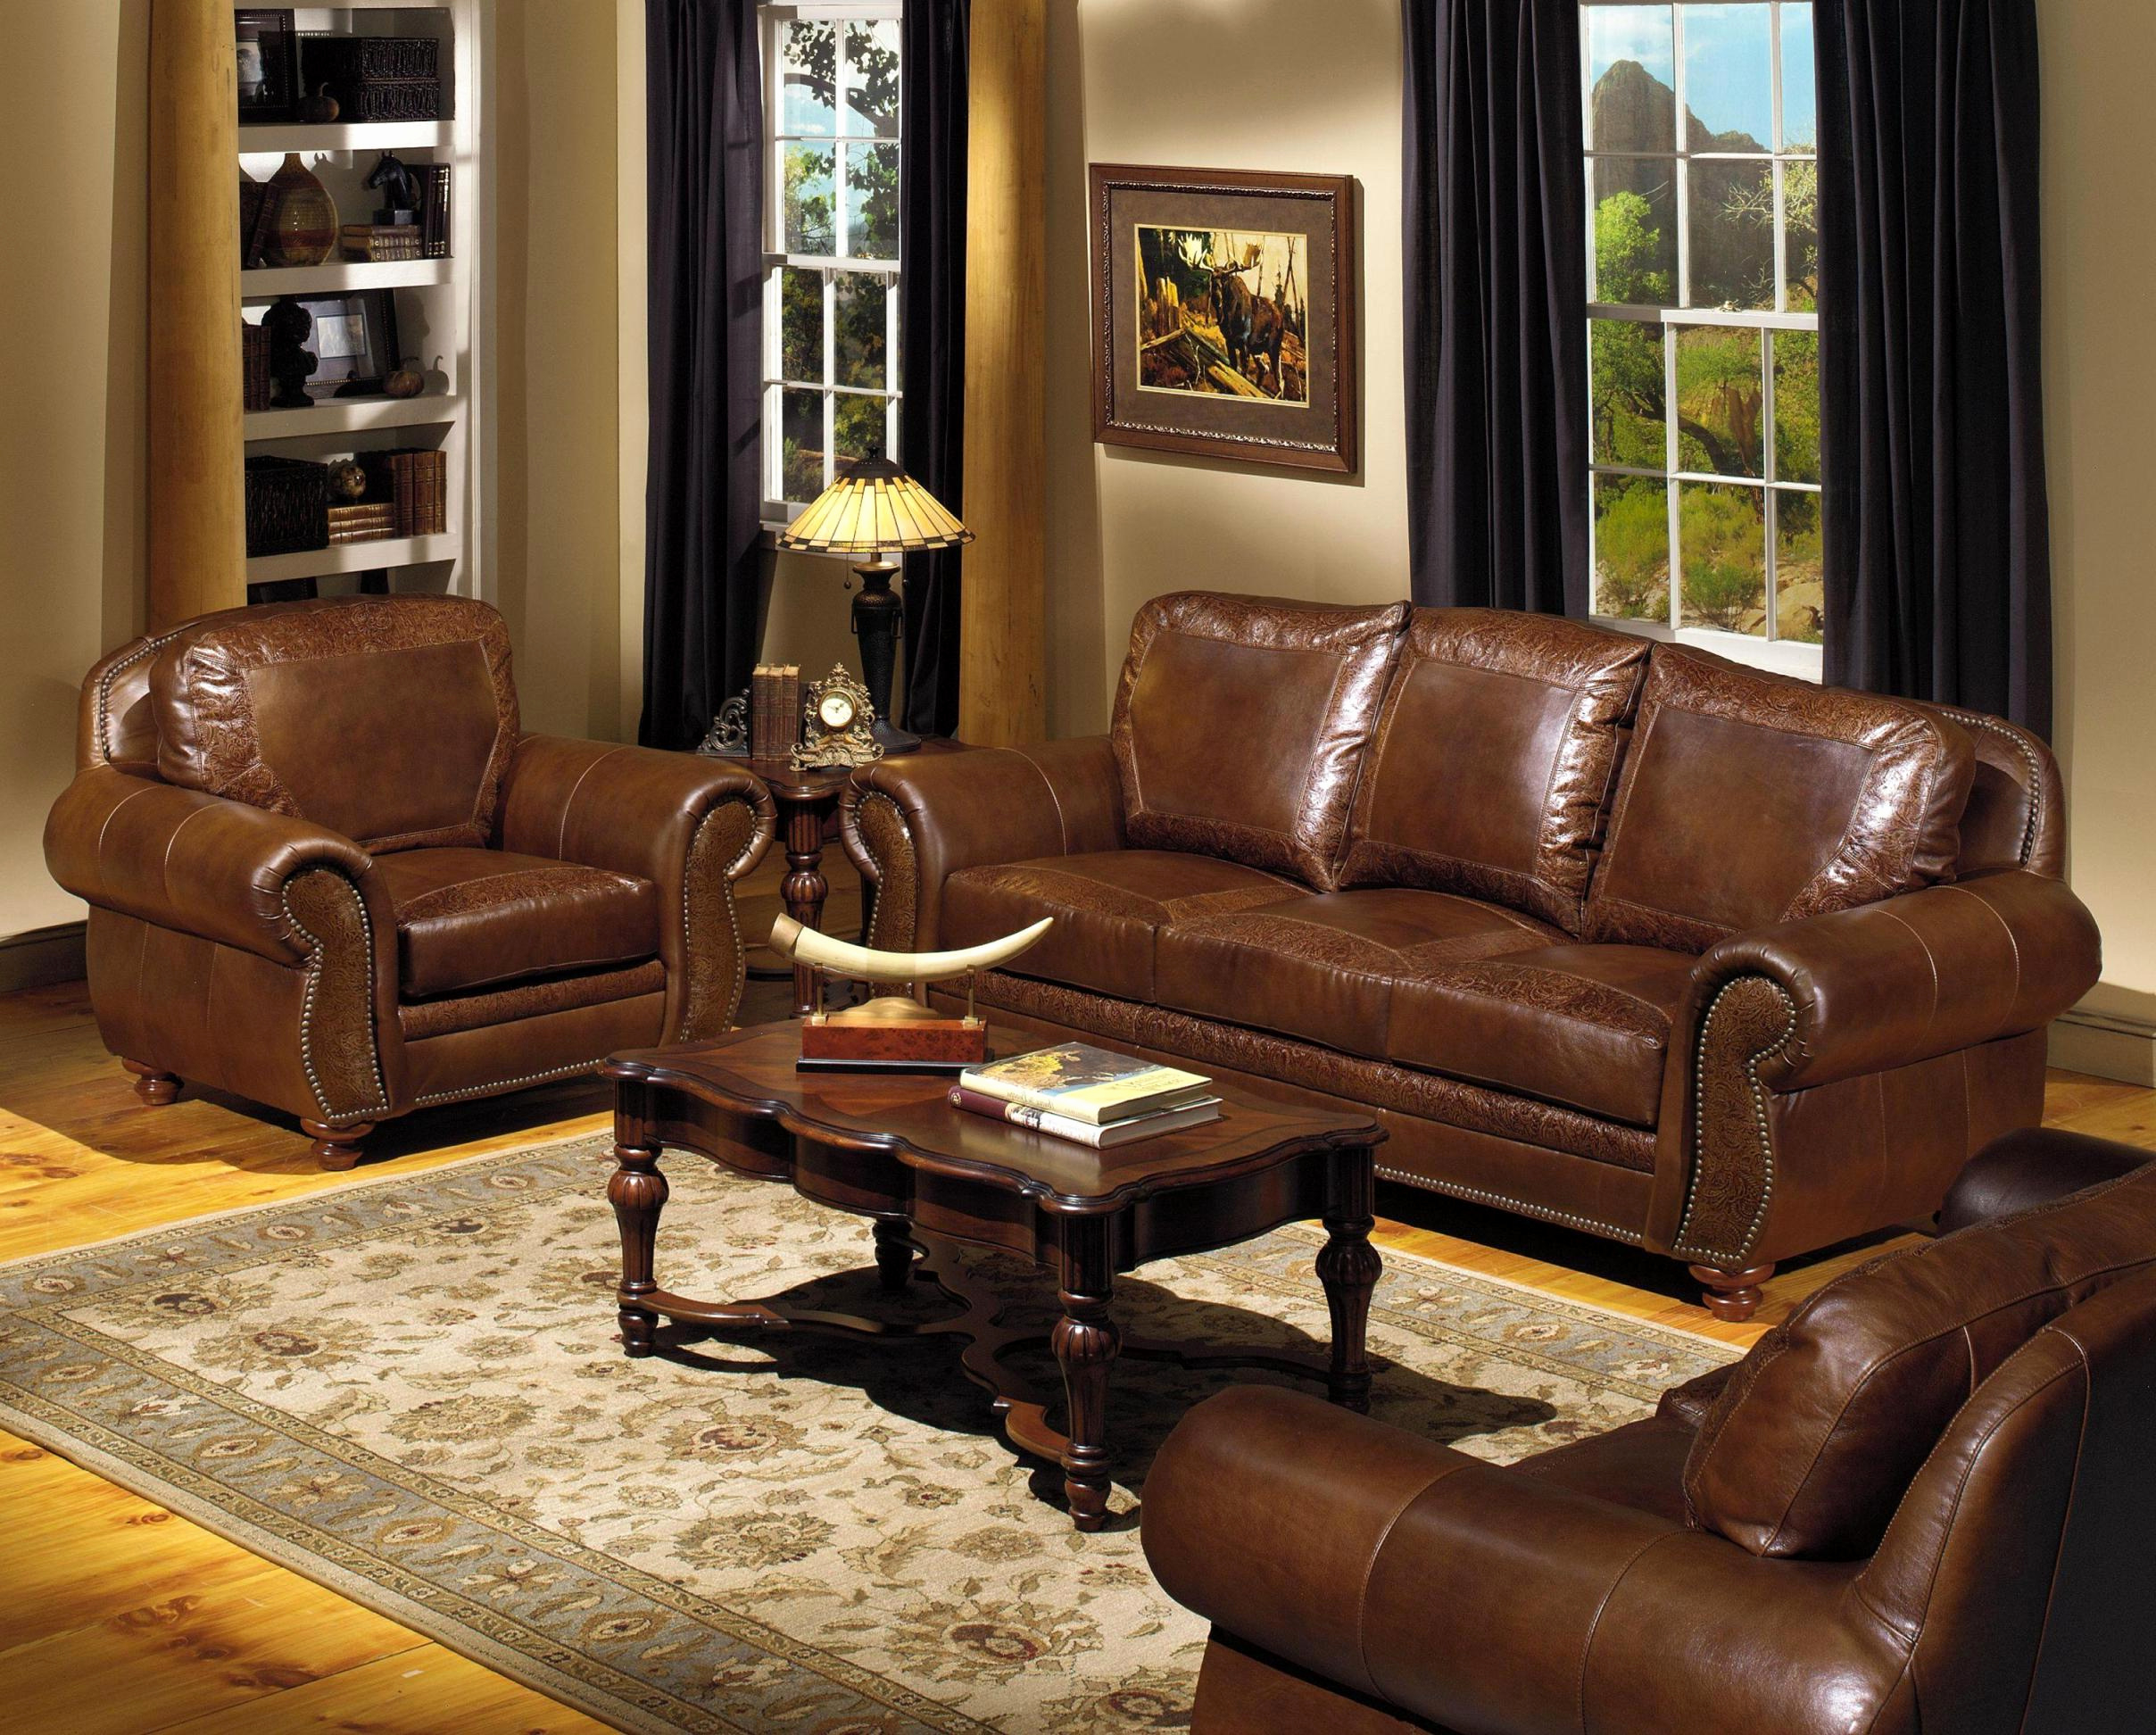 Kimbrells Living Room Furniture Lovely Cook Brothers Living Room inside Cook Brothers Living Room Sets